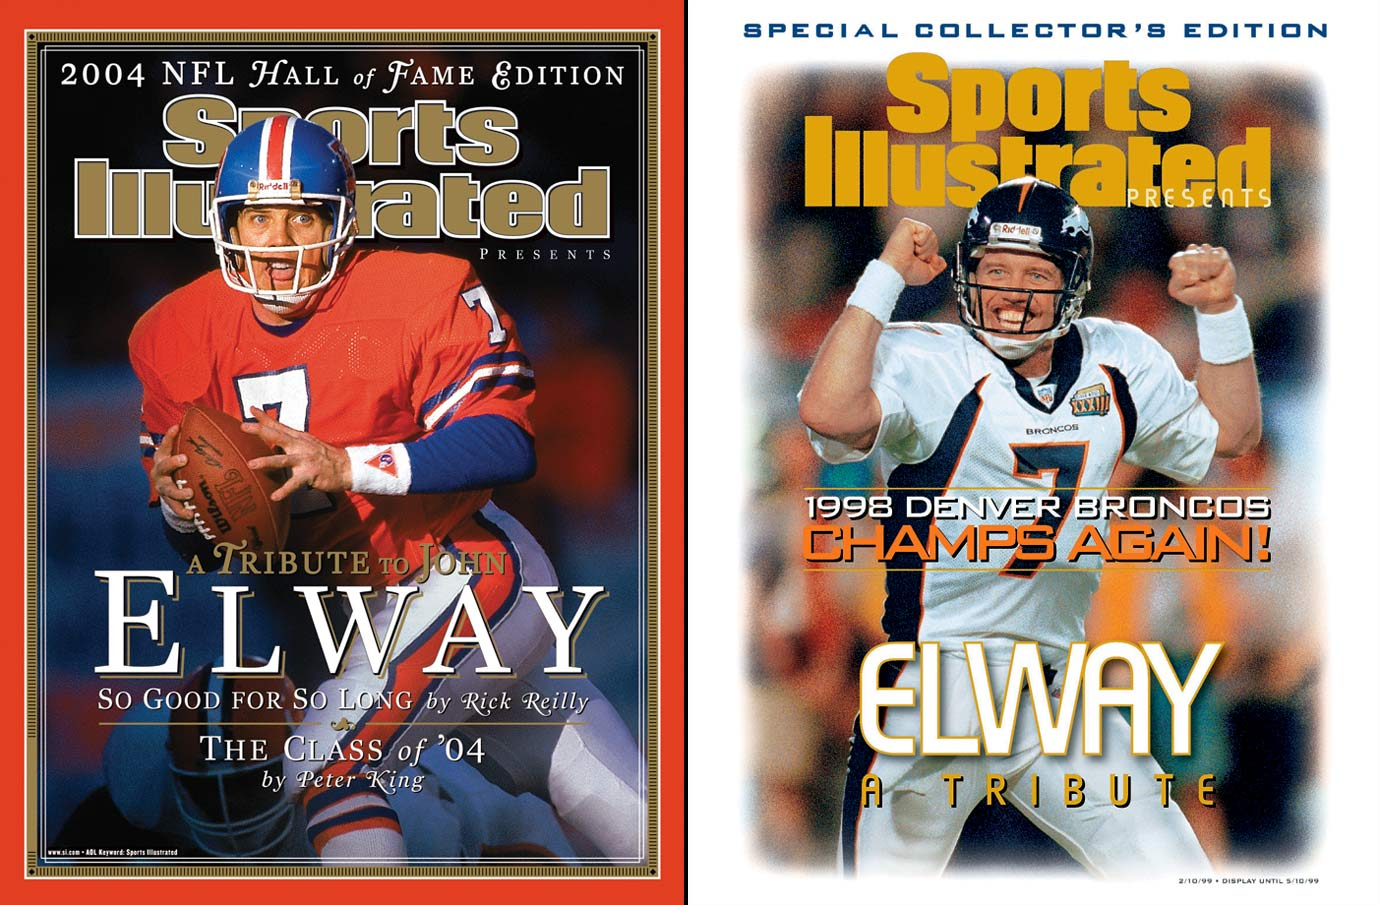 It took Elway until the penultimate year of his career to win a Super Bowl, but his prowess as a quarterback began far earlier. Fourth all time in passing yards and seventh in touchdown passes, Elway quickly established himself as an elite quarterback in his 16-year career.